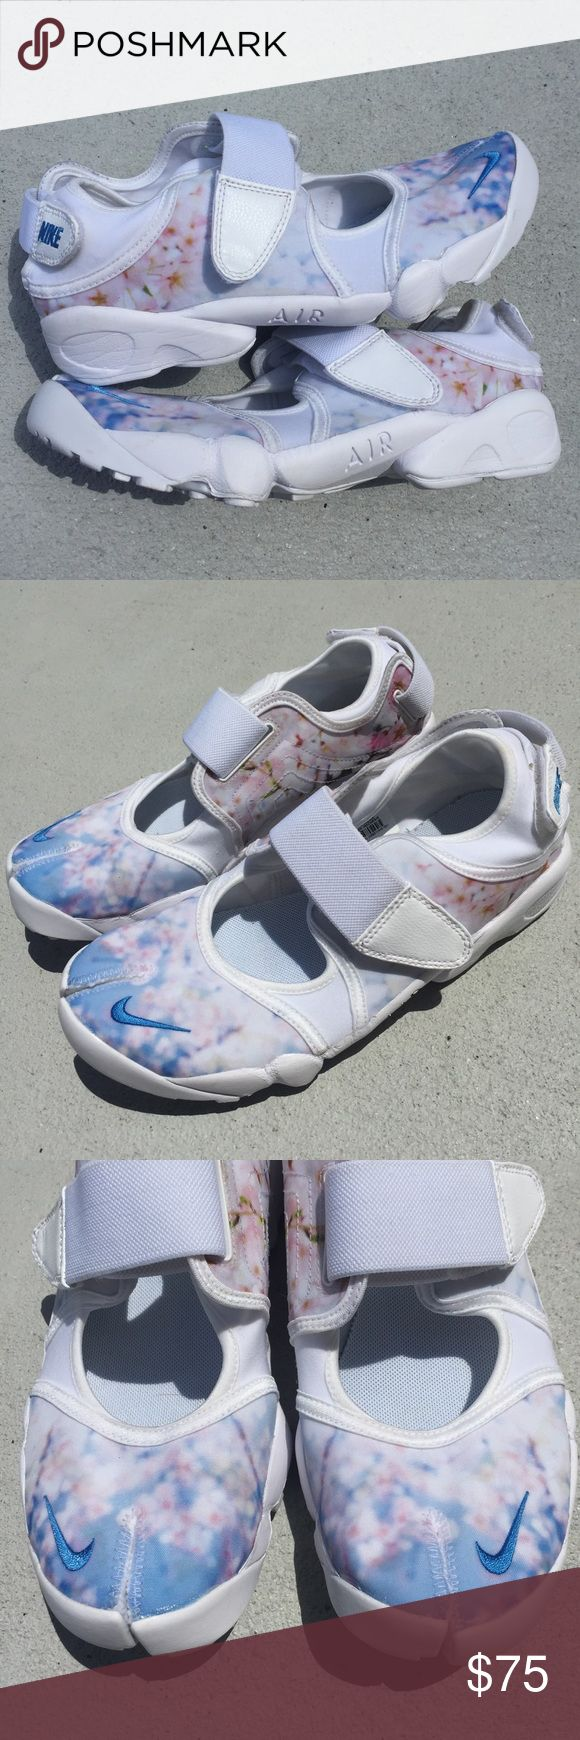 Nike Air Rift Cherry Blossom Running Shoes 10 Sold out online! Size 10 women's. Nike air rift running shoes. Has two straps and split toe design. Nike Shoes Sneakers